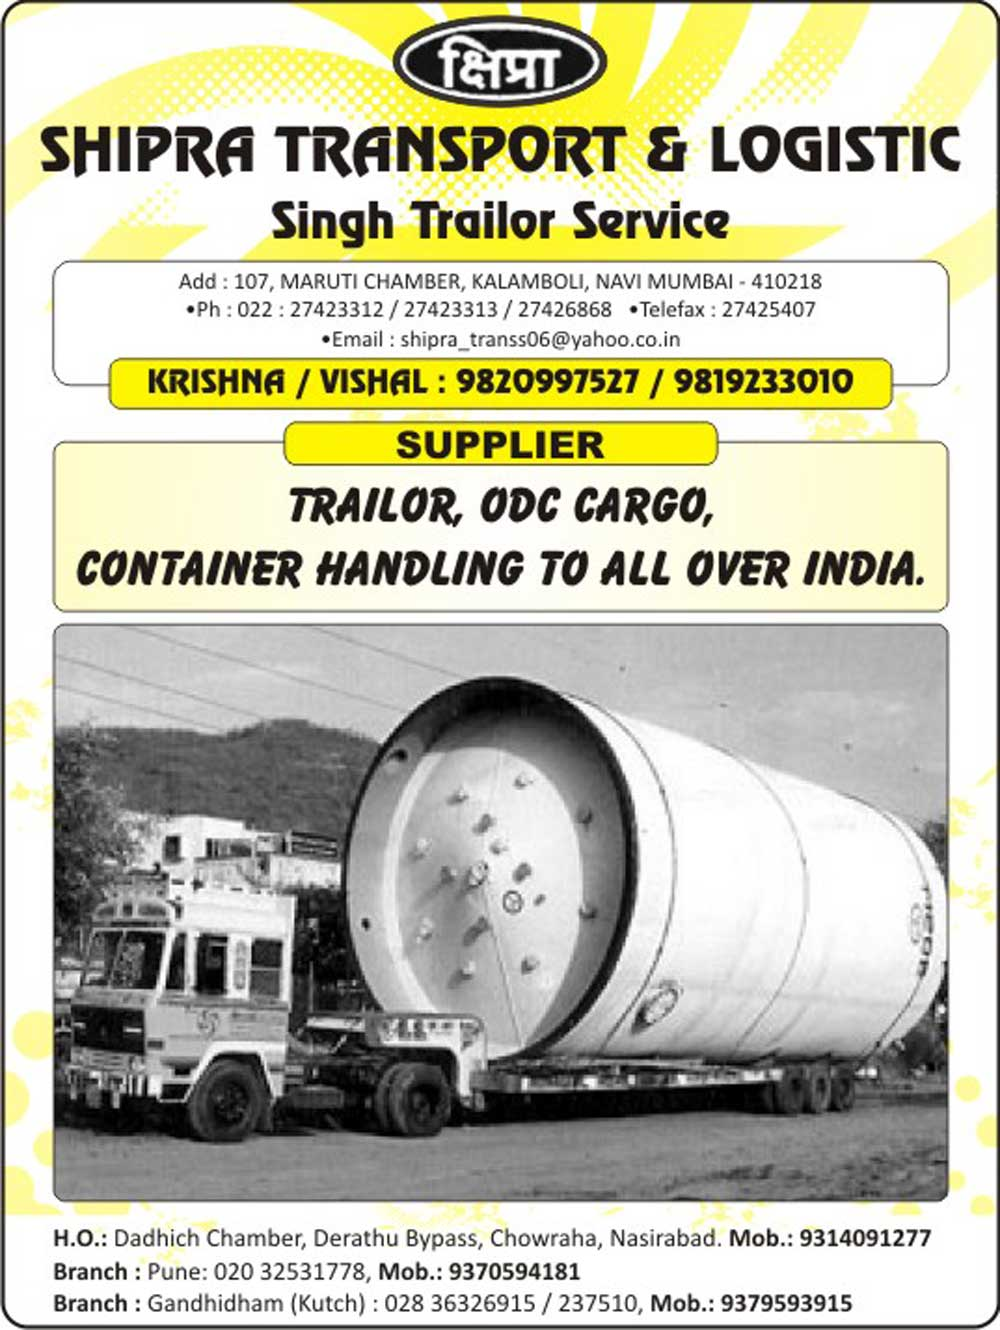 Shipra Transport Logistics